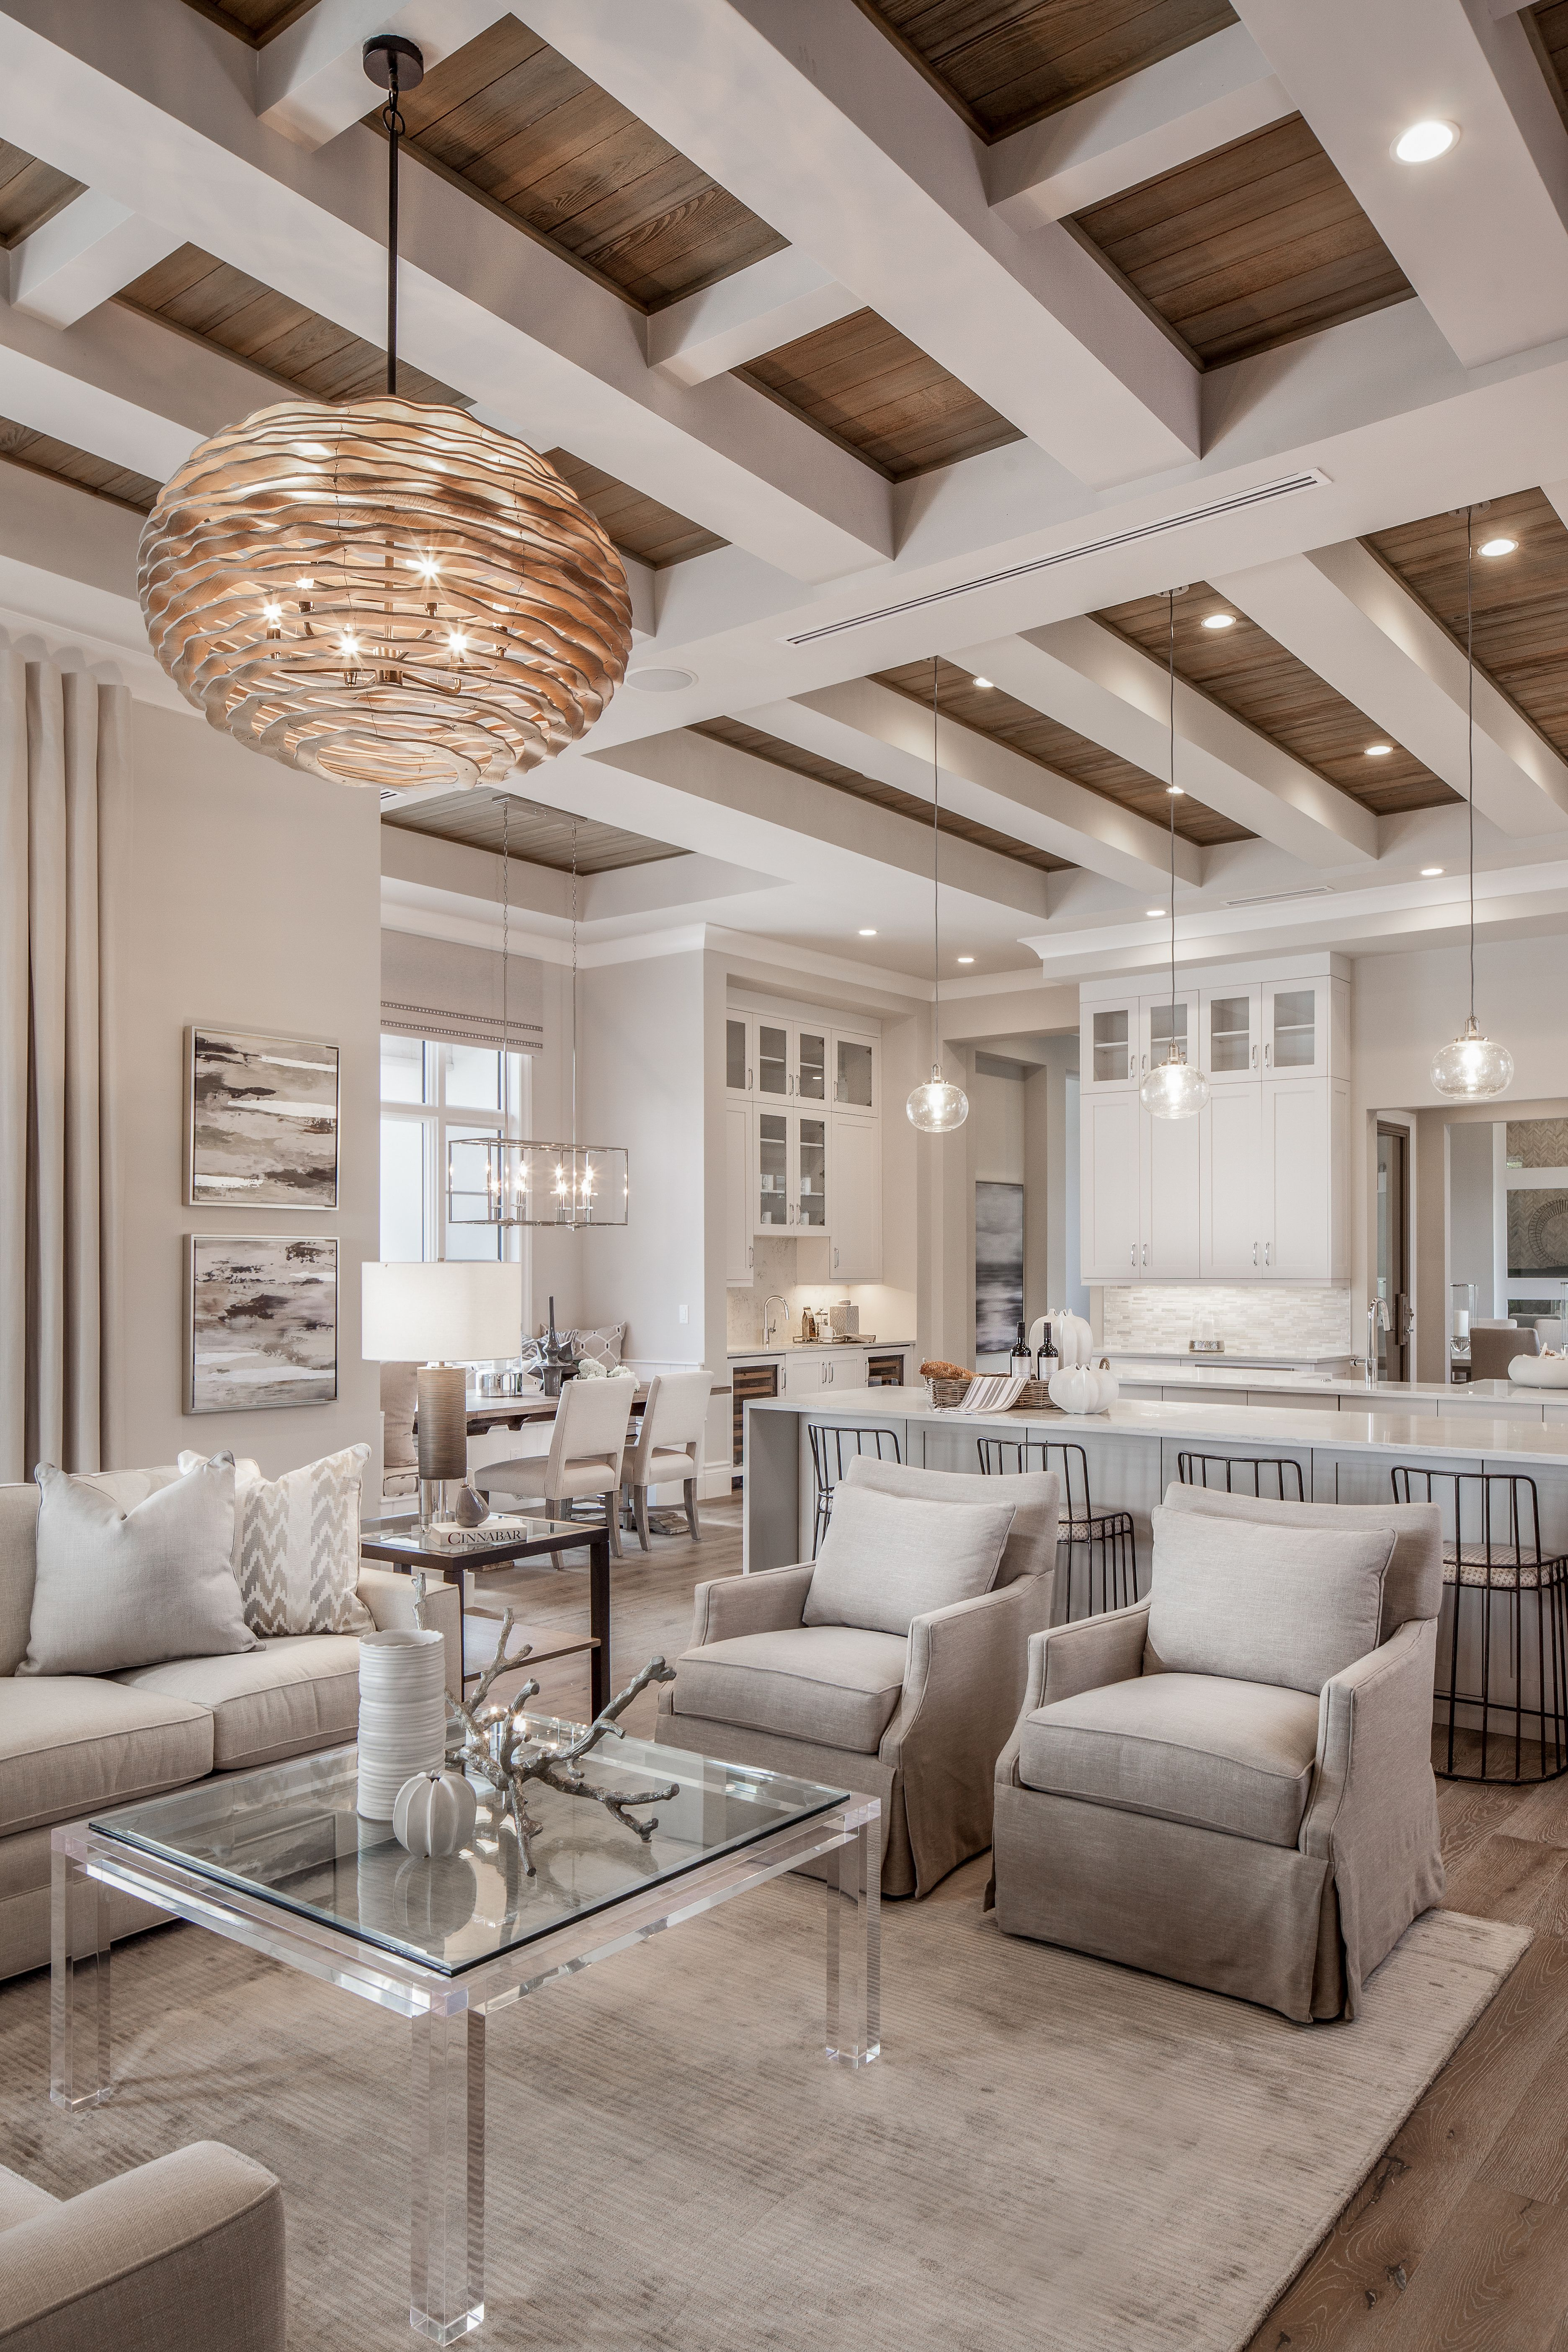 Layout and colors decor living room home interior also best dream images in rh pinterest